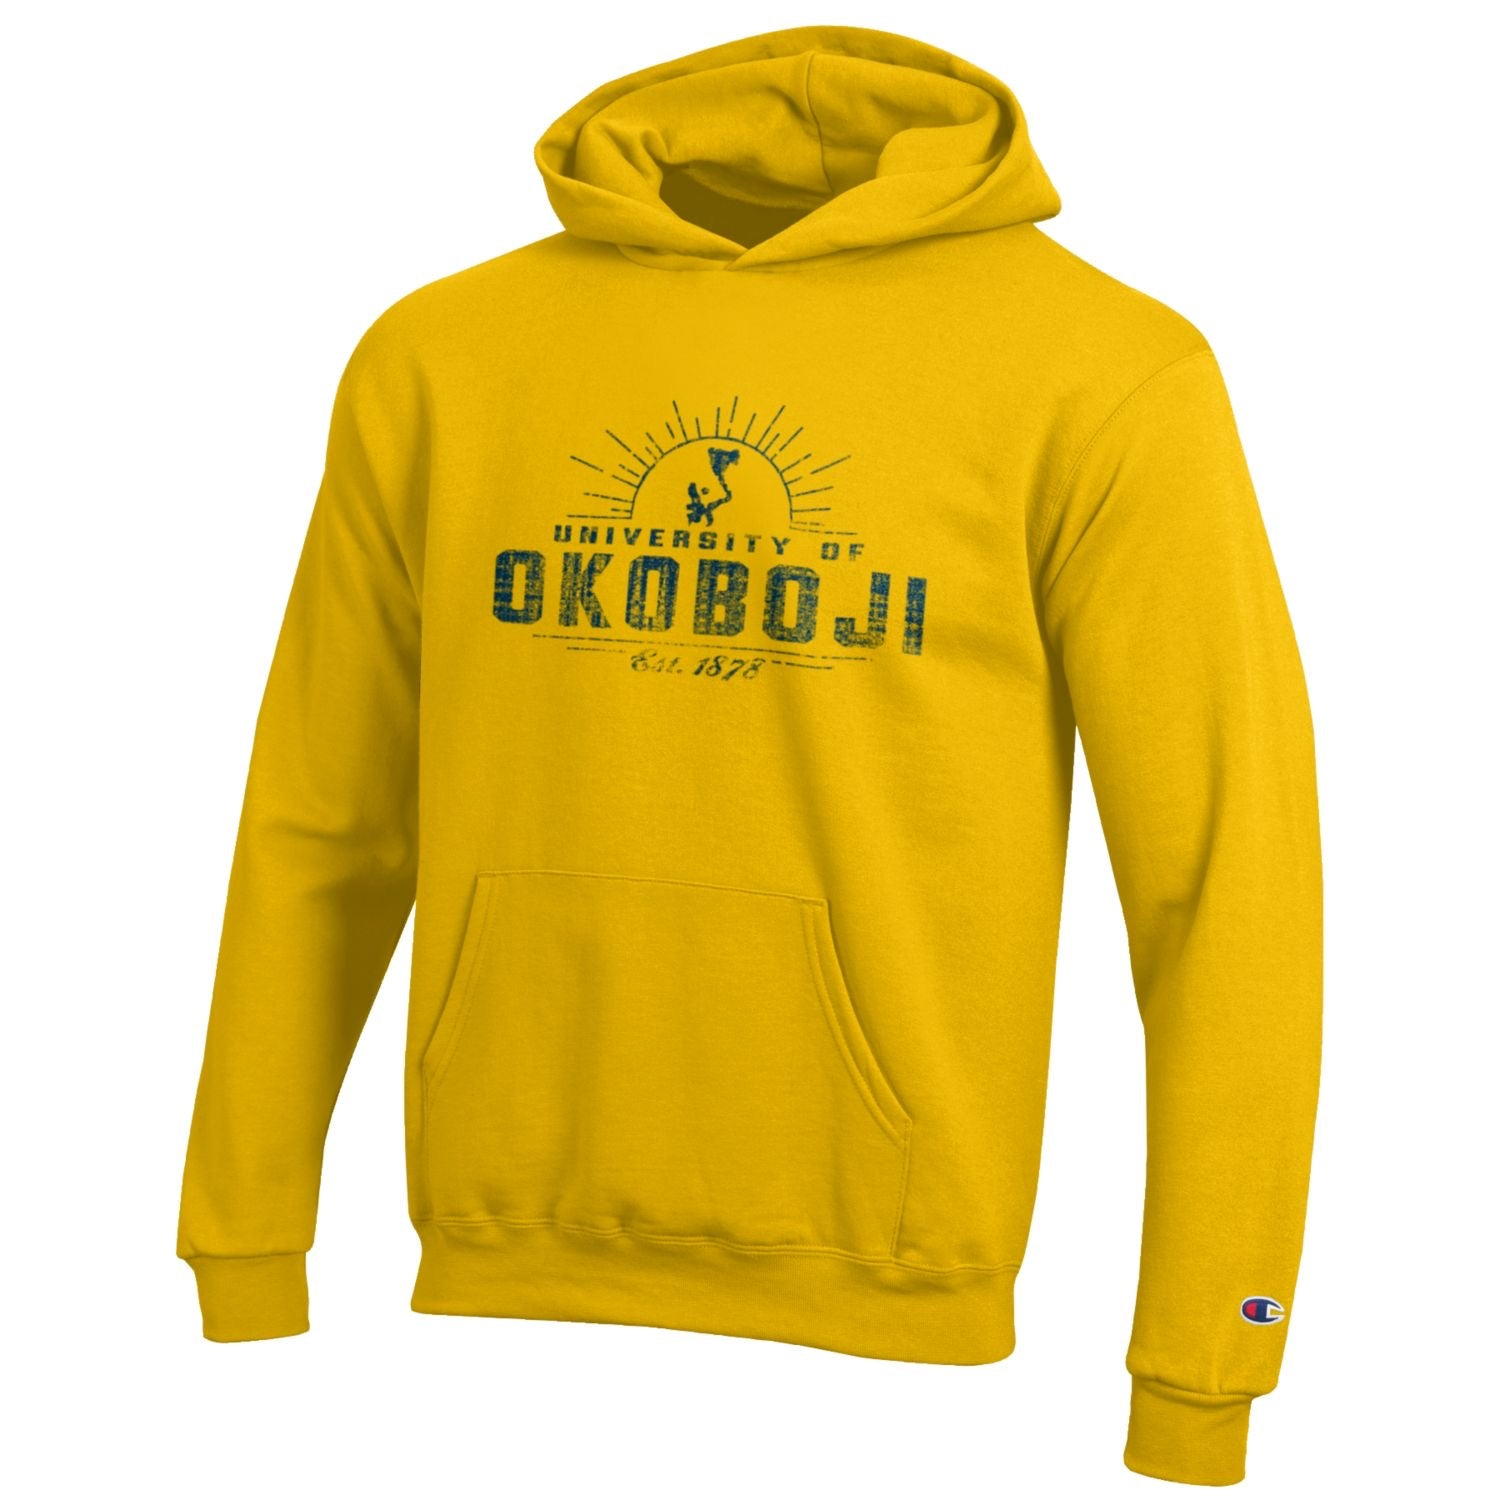 Kids University of Okoboji Campus Sun Hooded Sweatshirt- Yellow Gold